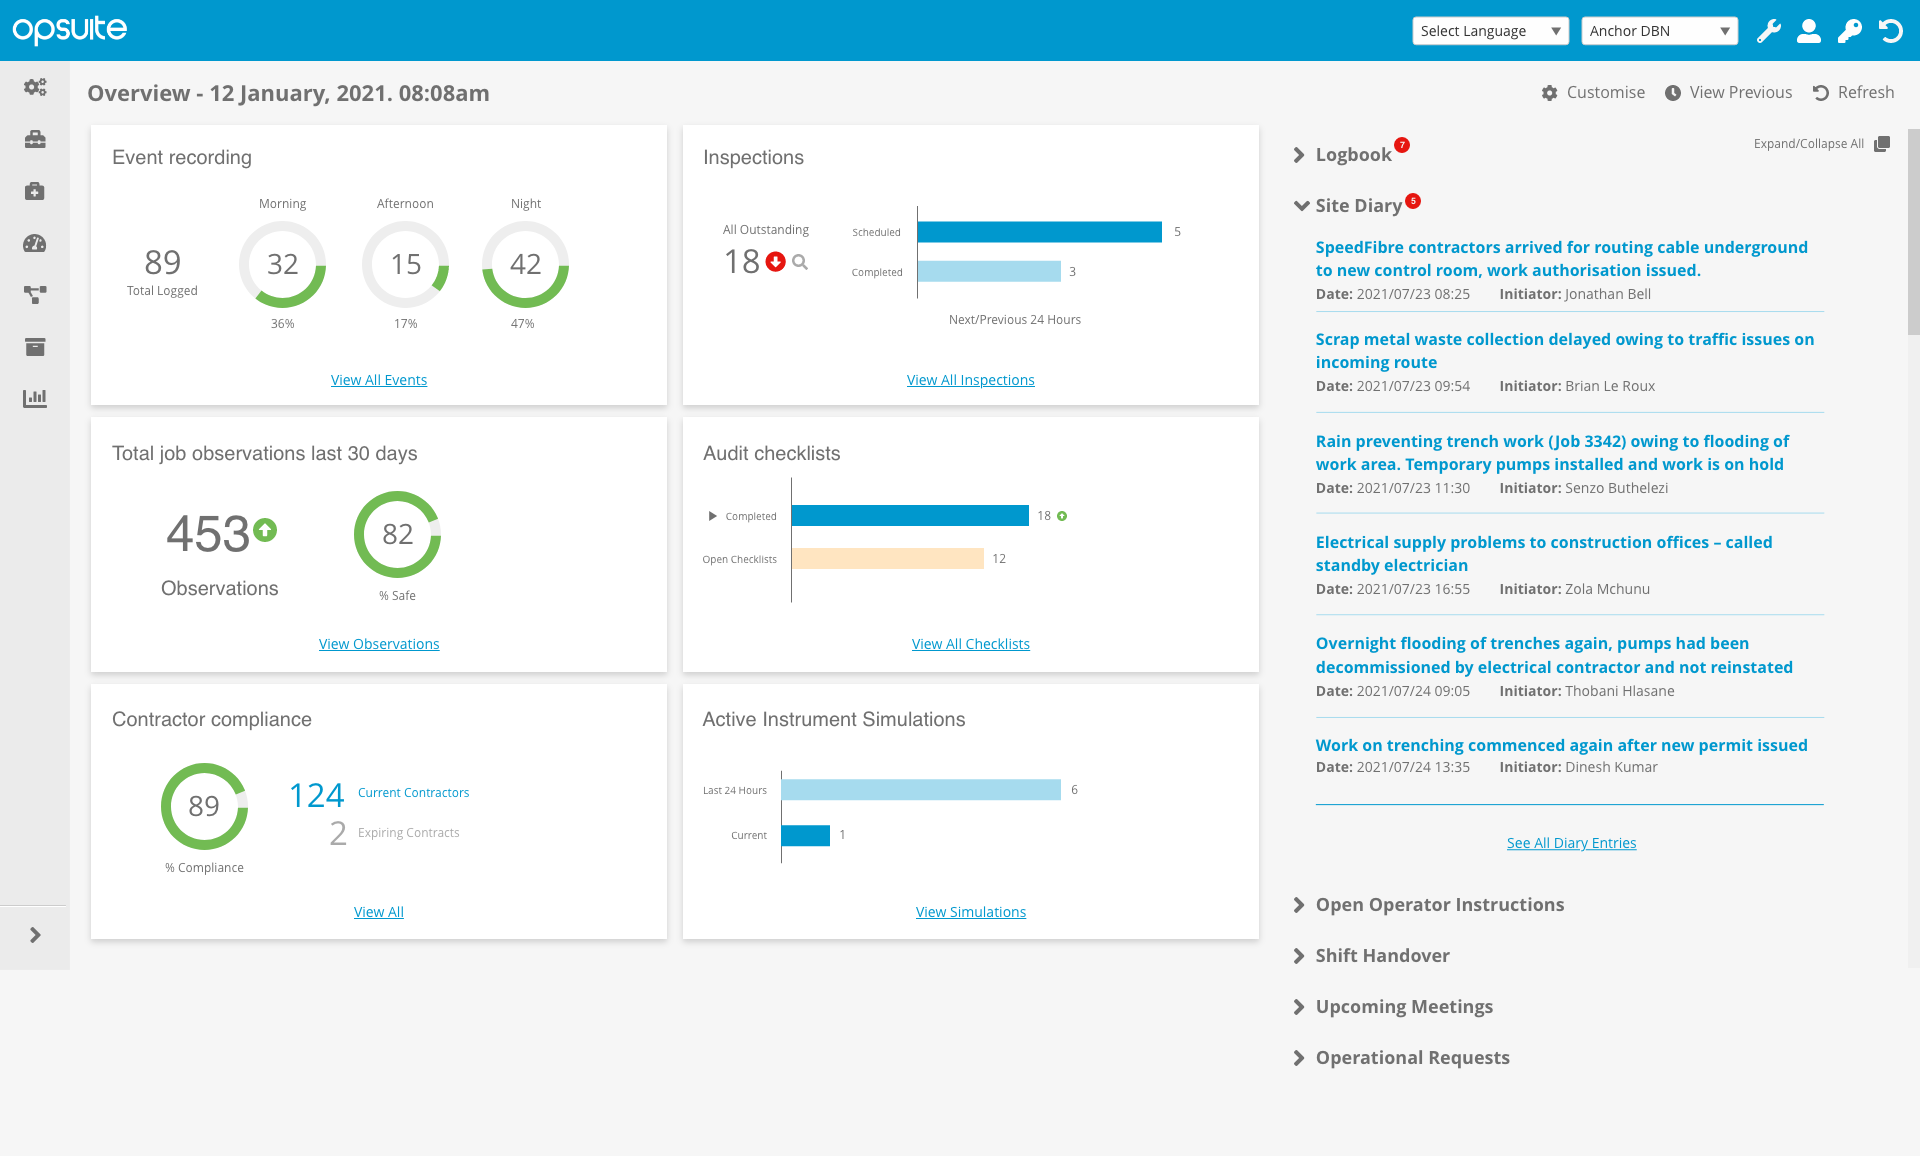 OpSUITE Dashboard Site Diary Open